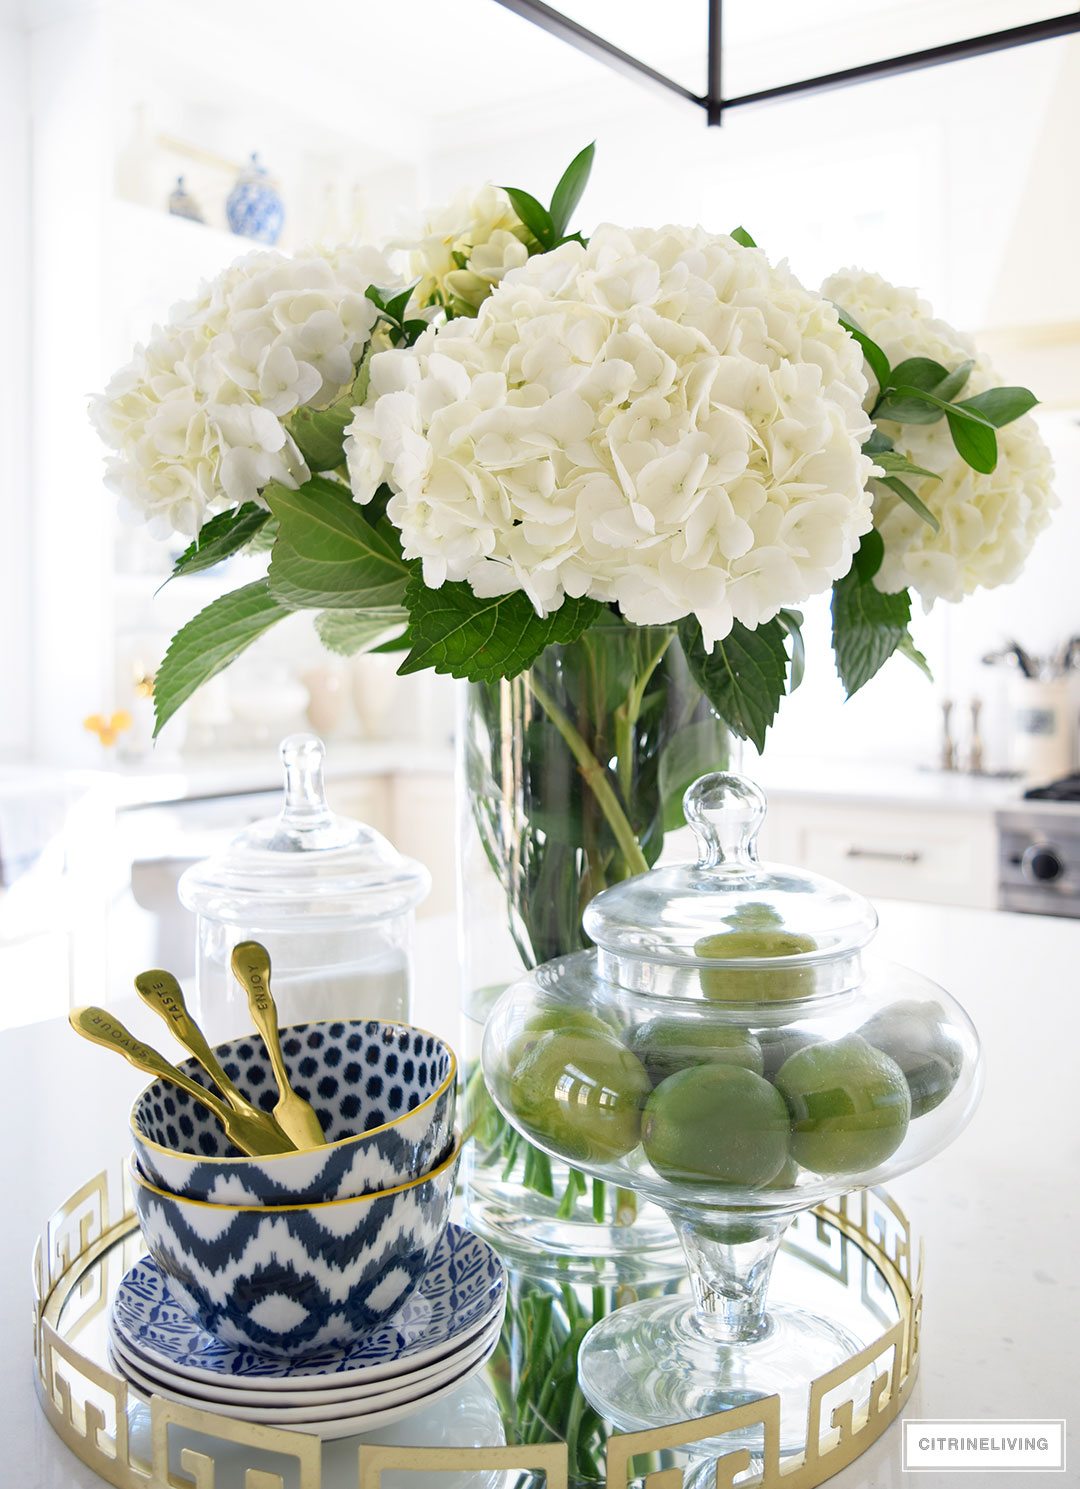 Bright and airy kitchen with fresh produce and blue and white accessories - add the perfect touch for the Spring and Summer seasons.